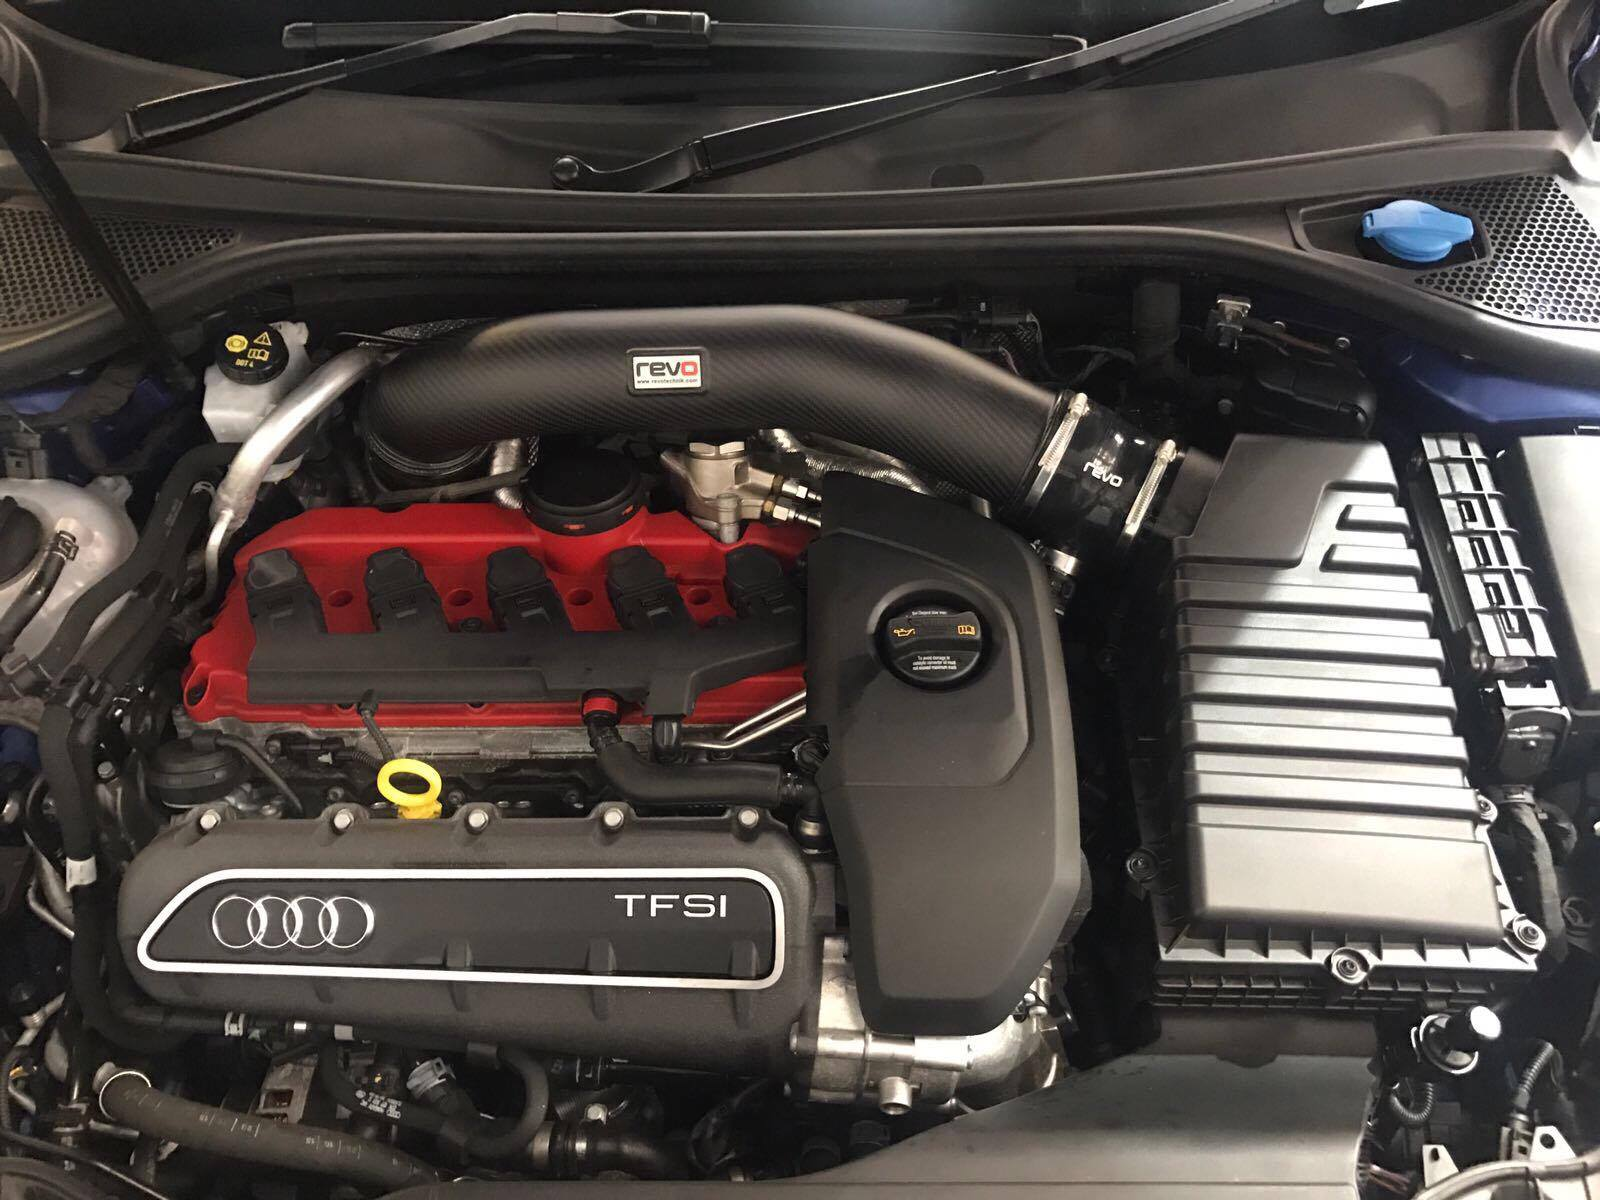 Independent Audi specialist Preston carry out exciting upgrades on RS3